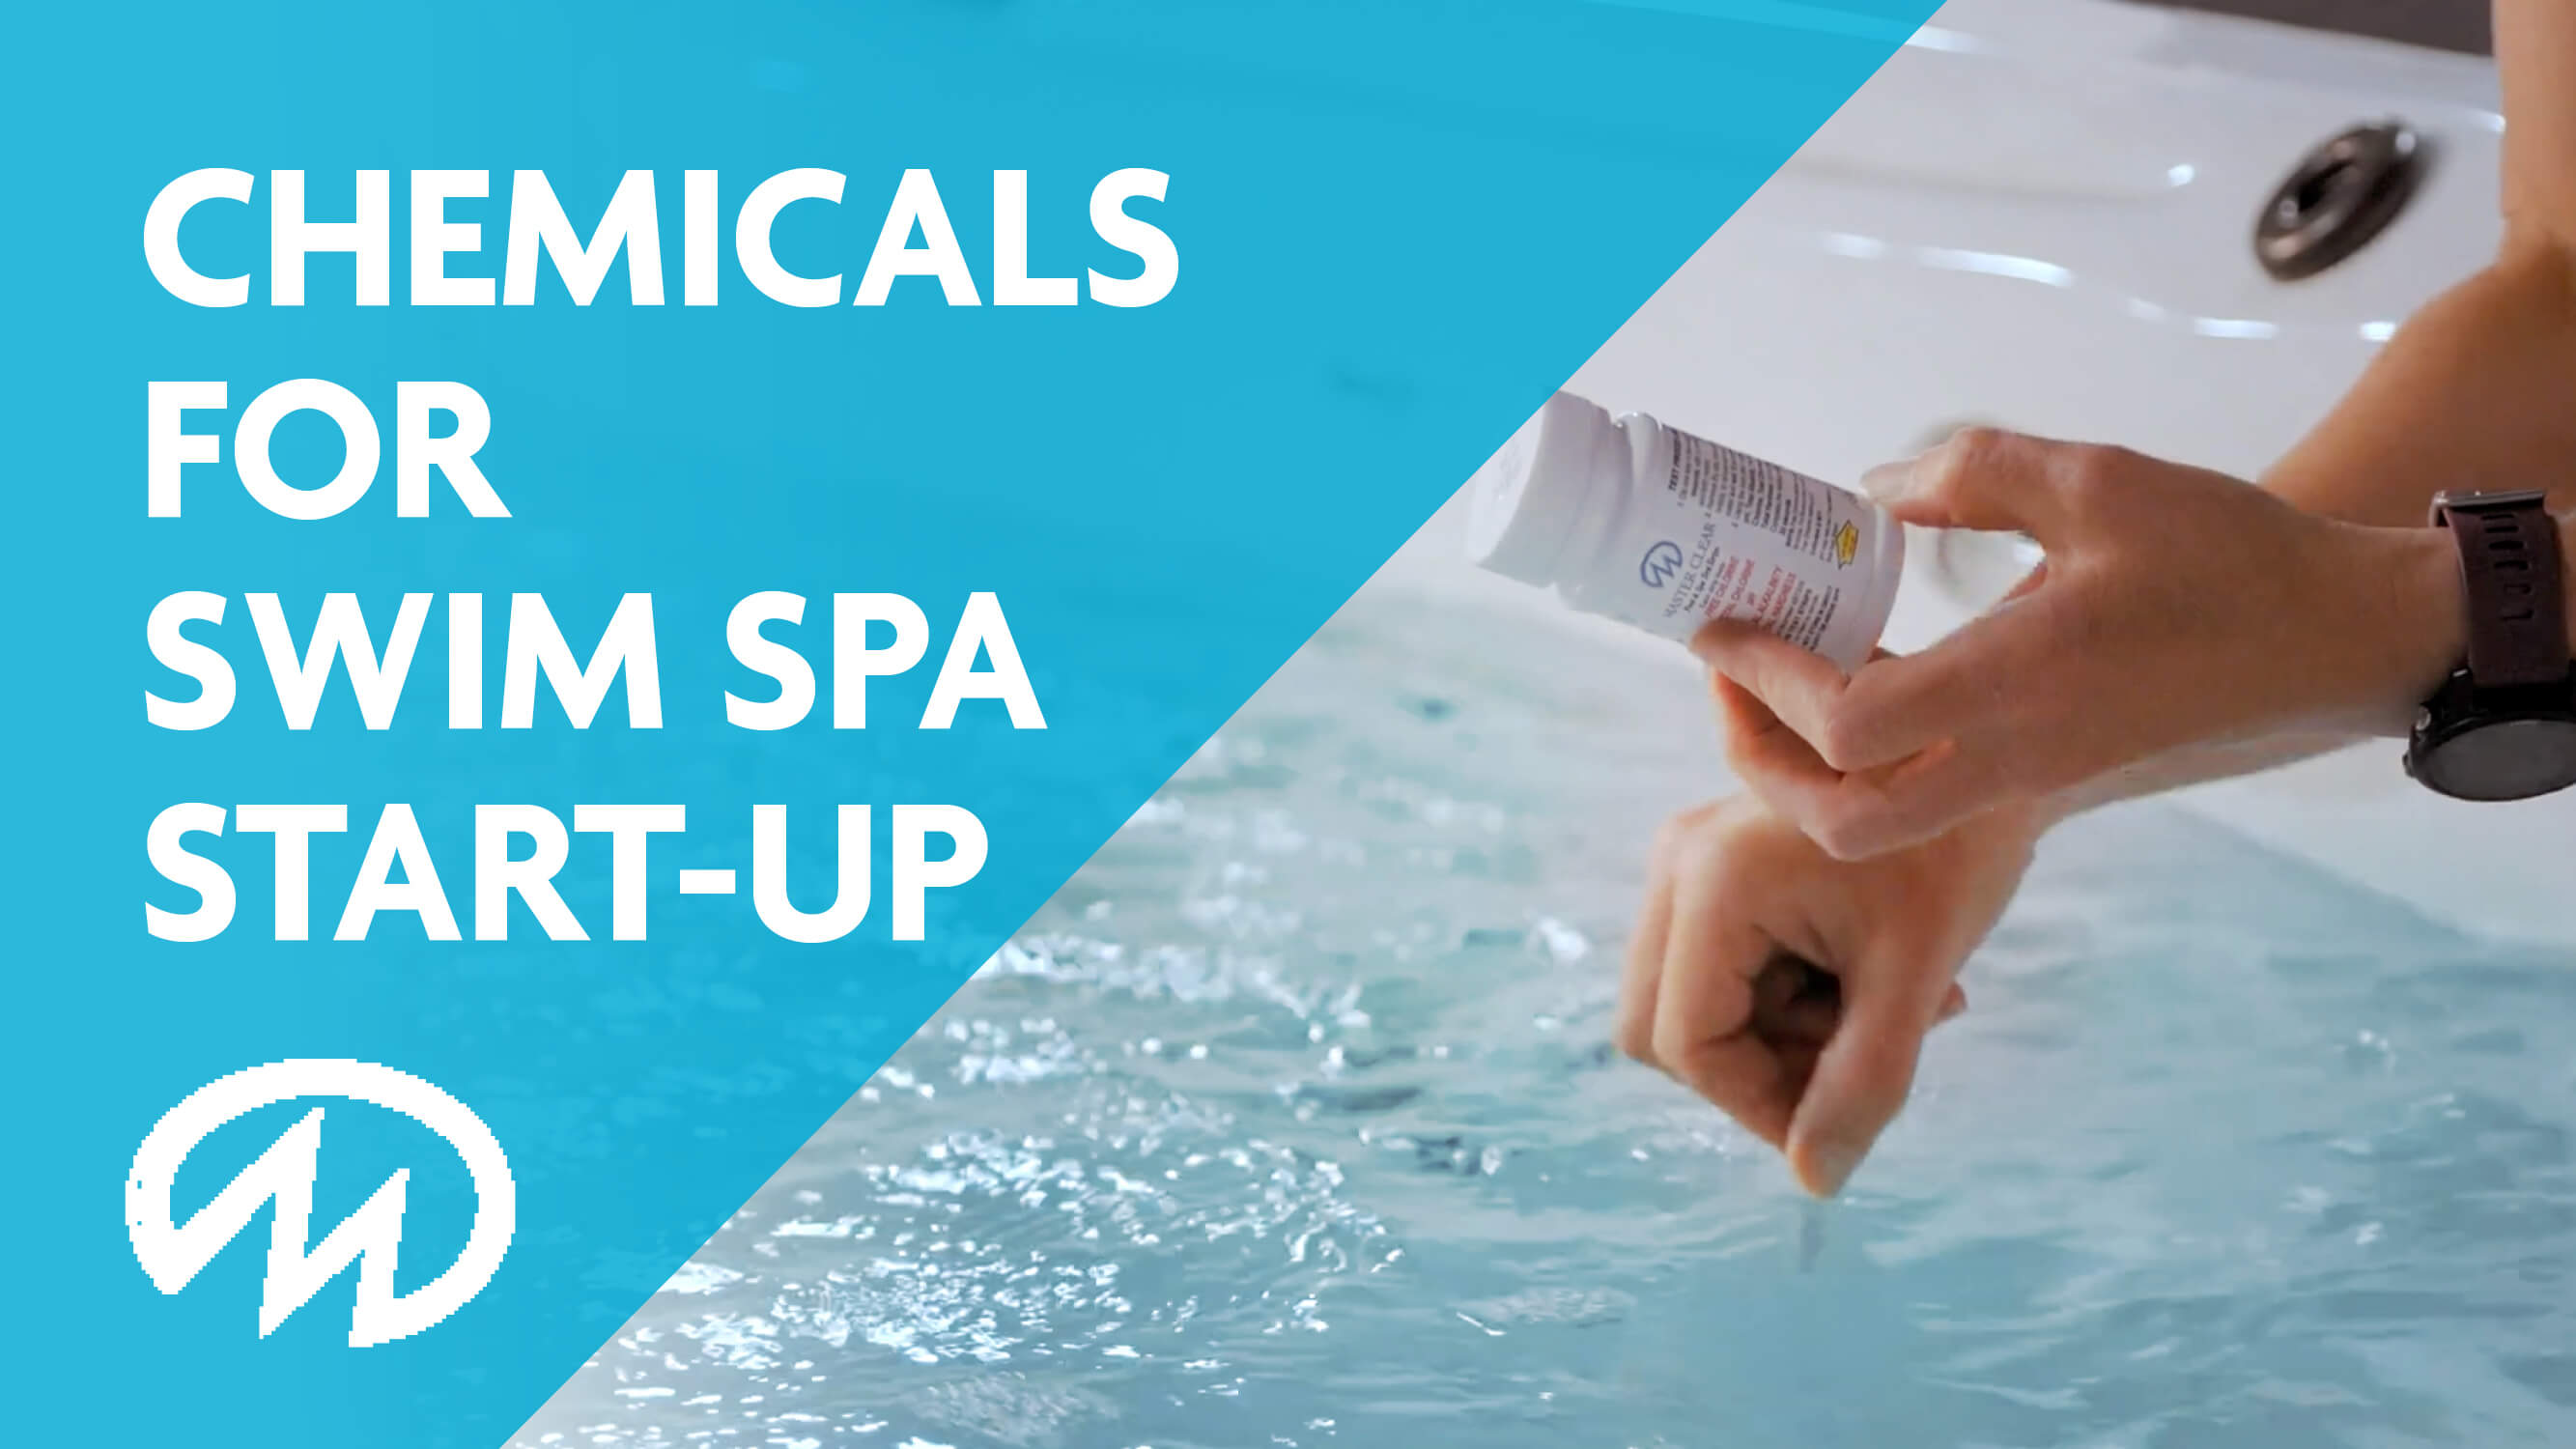 Chemicals for swim spa start up